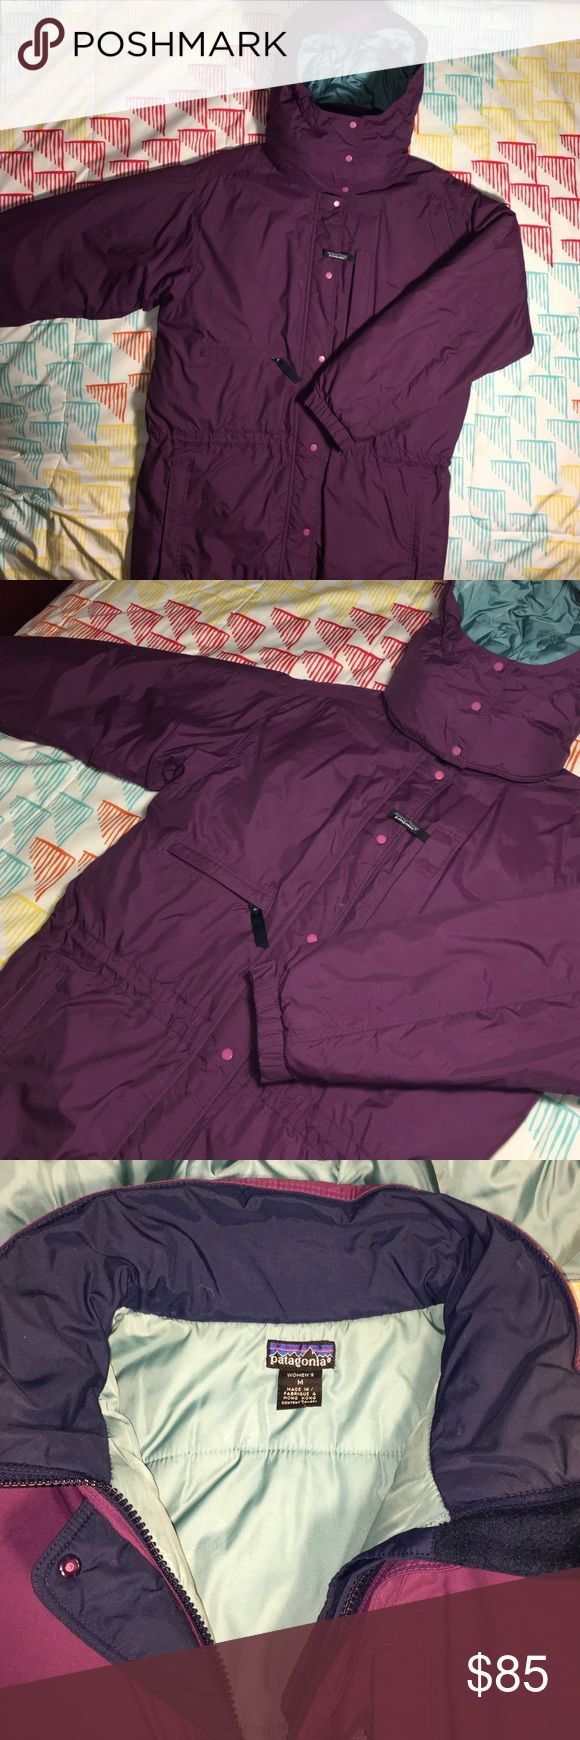 Patagonia Parka Style Womens Jacket w/ Hood Size medium -  Patagonia parka with detachable hood that zippers off. Super comfy and warm coat with elastic adjustable band around the waist line. A couple small faded markings but can only be seen when inspected up close. All in all a super great Patagonia jacket for a good price Patagonia Jackets & Coats Puffers